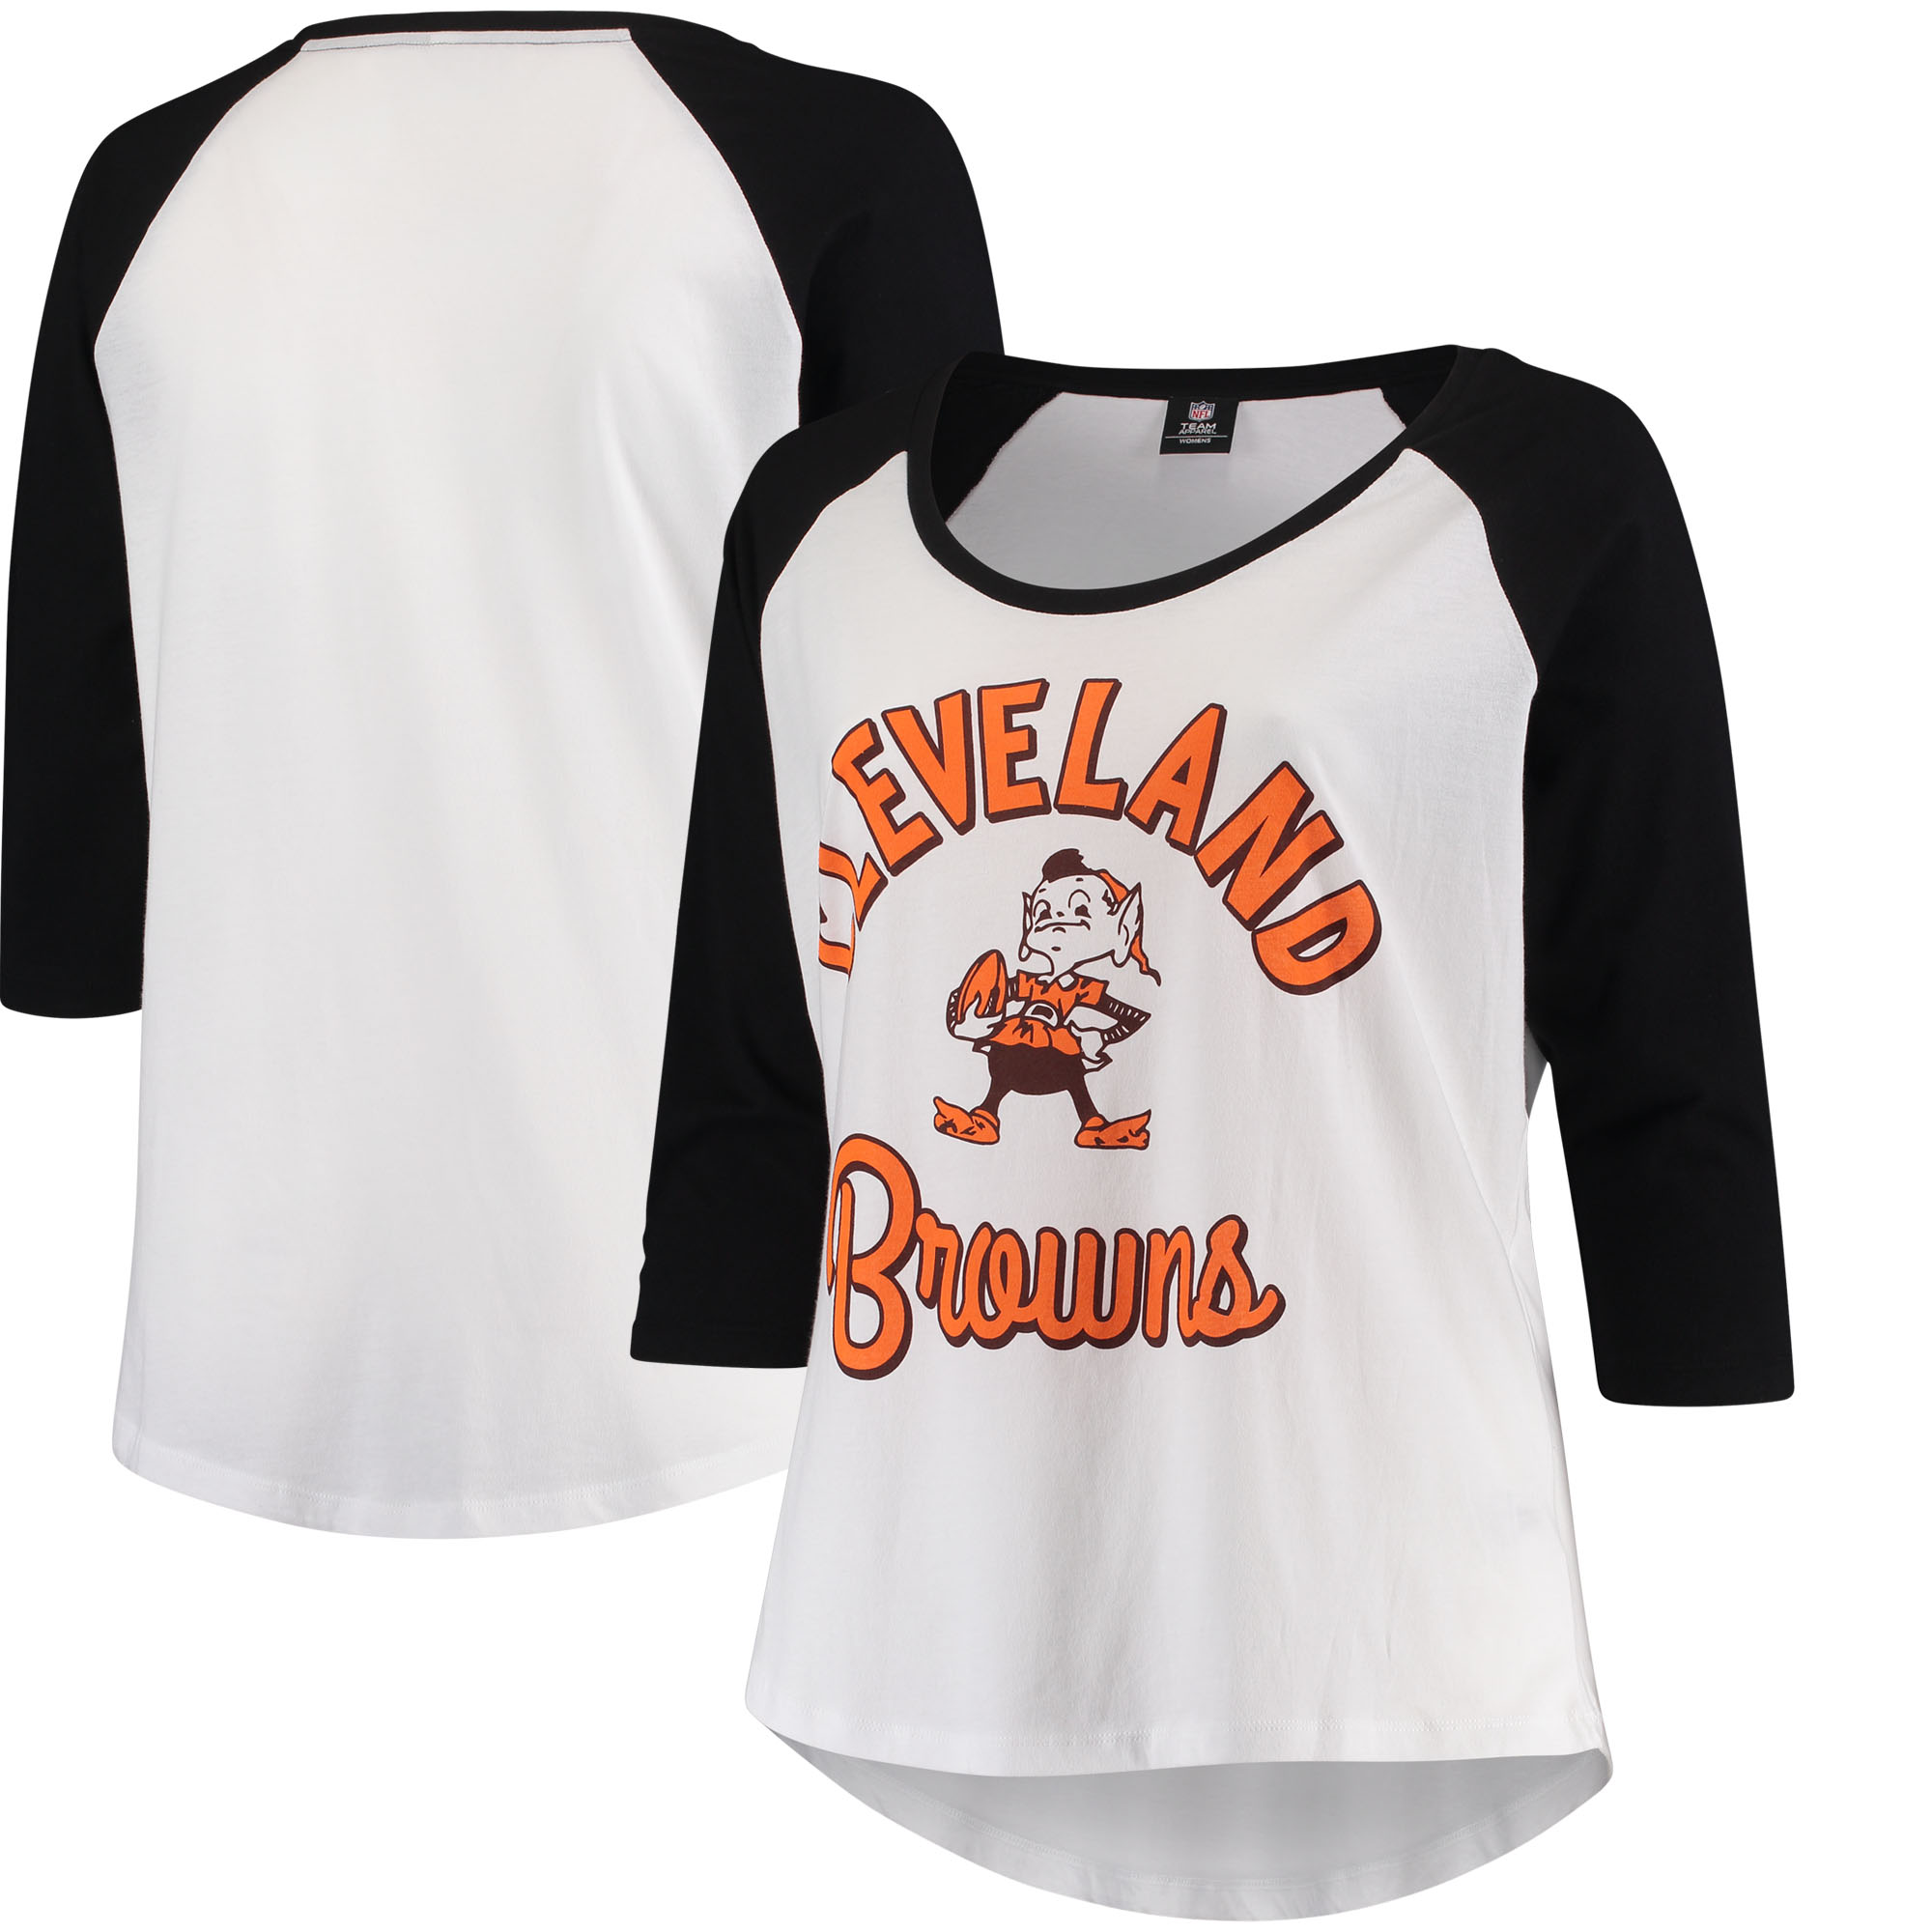 Cleveland Browns 5th & Ocean by New Era Women's Plus Size 3/4-Sleeve Raglan T-Shirt - White/Black - Plus 4X